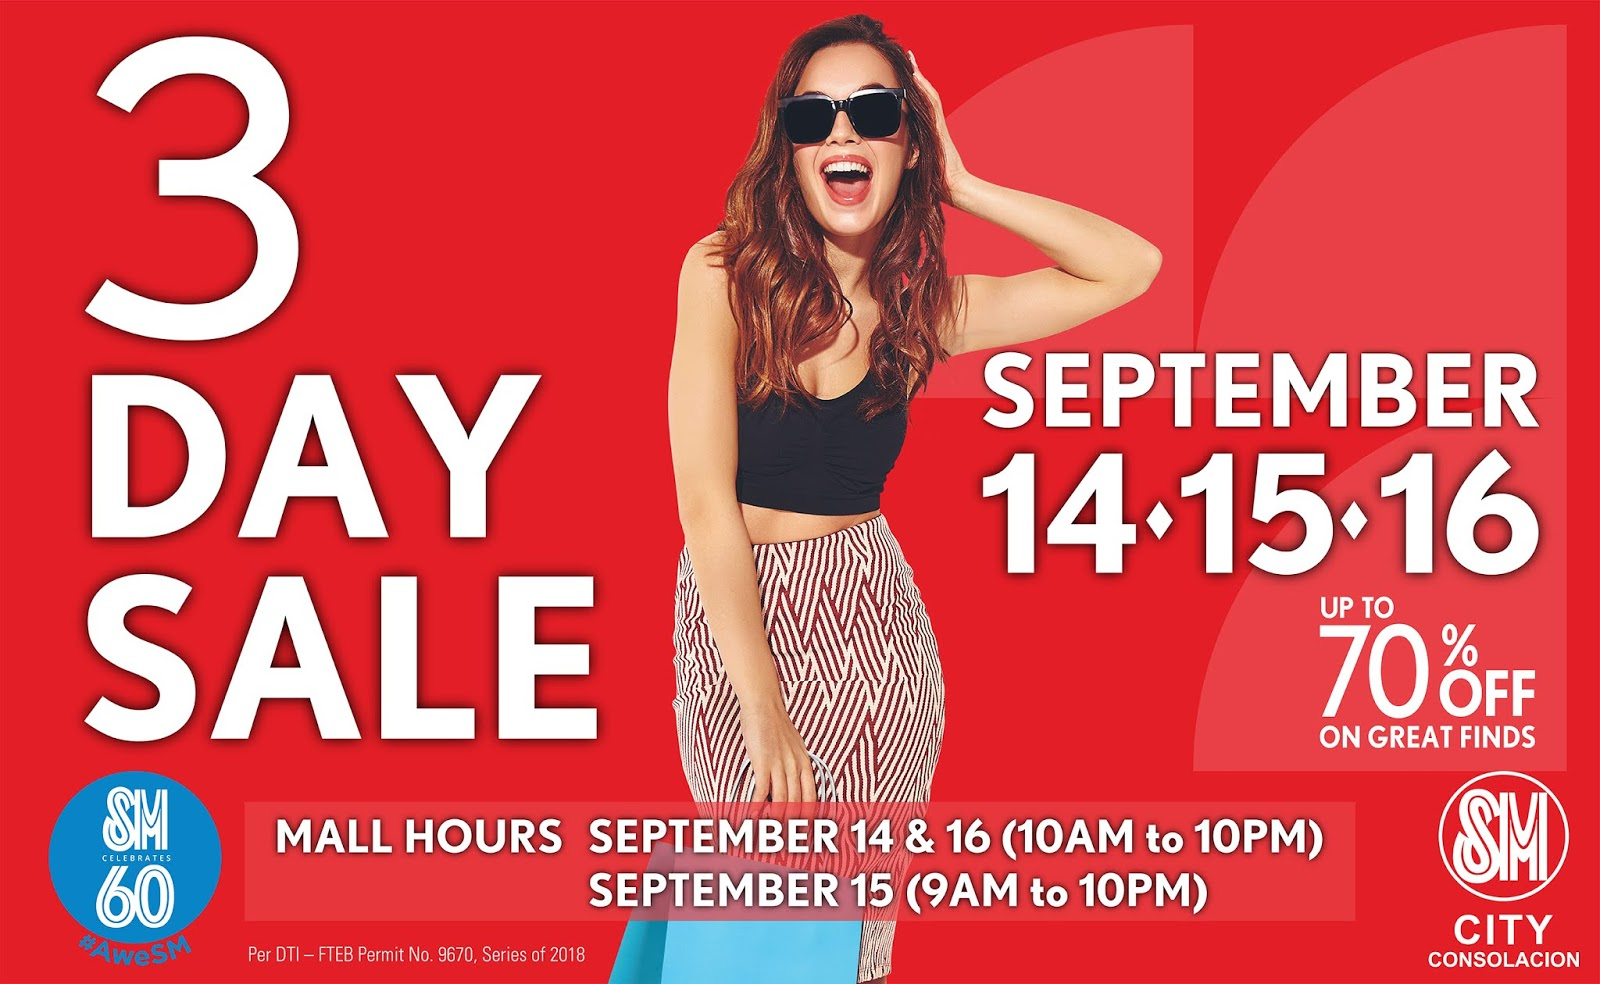 3 Big Reasons To Get Excited with SM Consolacion's 3-Day Sale